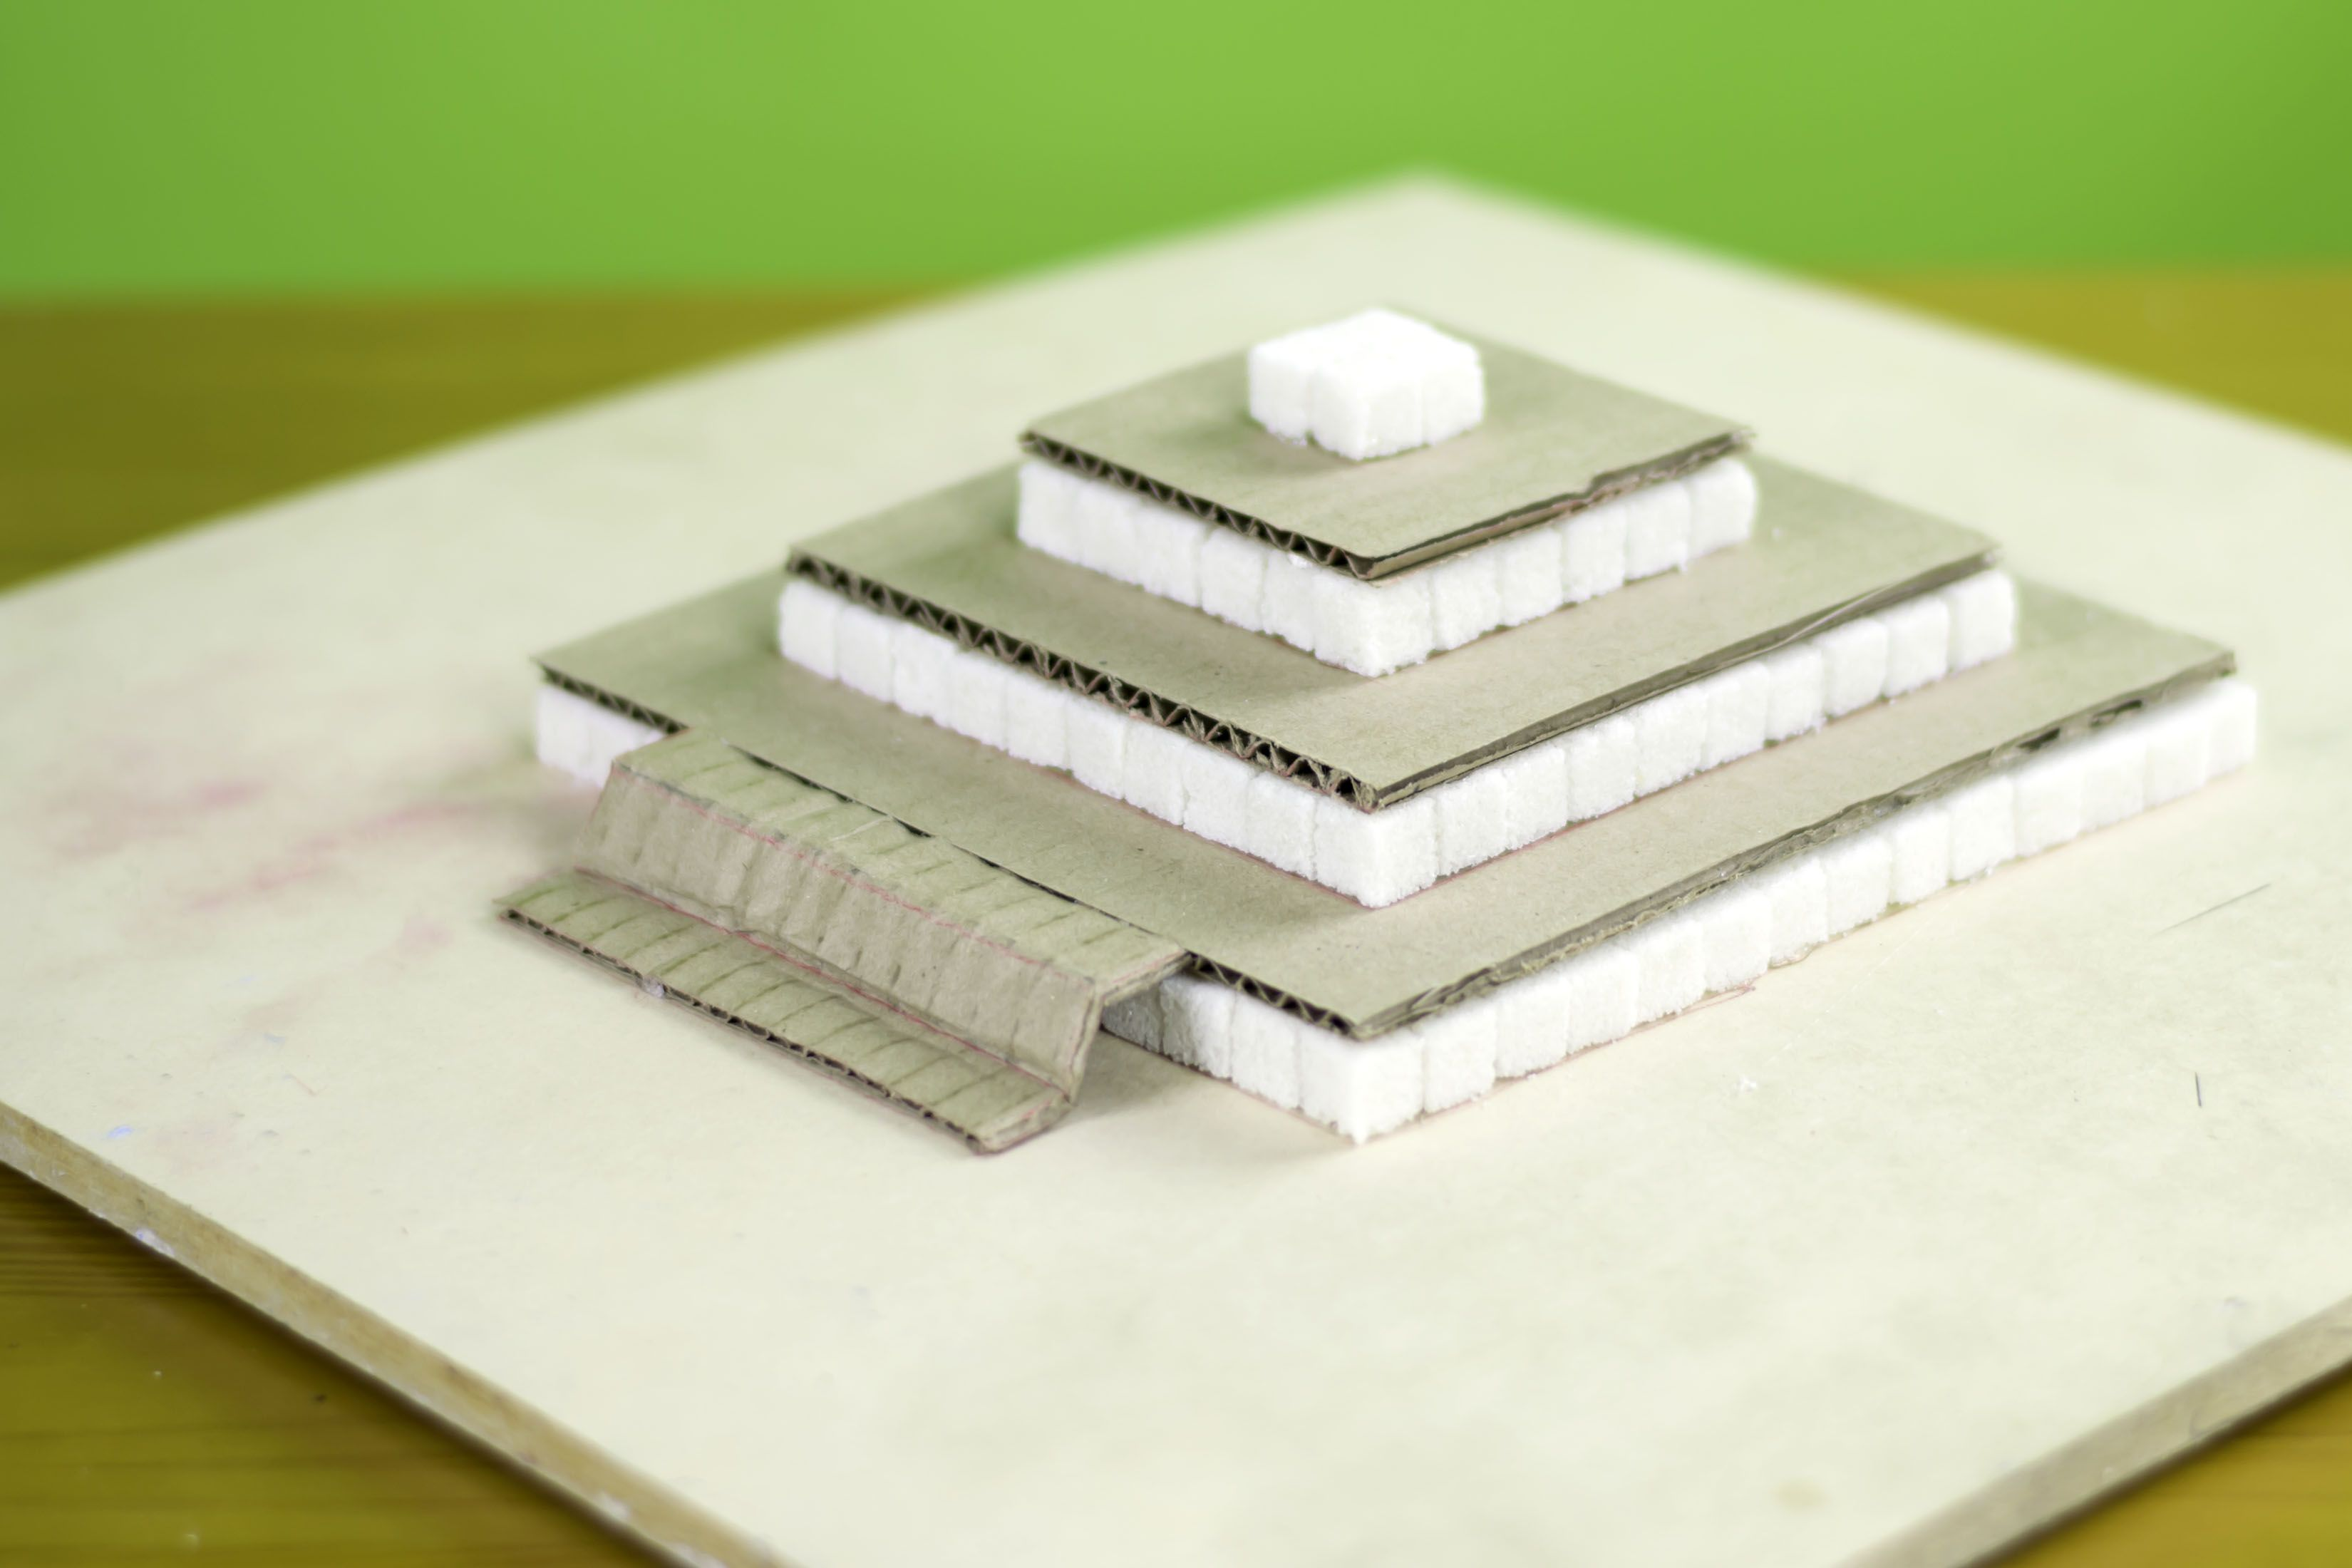 How to Build a Ziggurat for a School Project | crafts